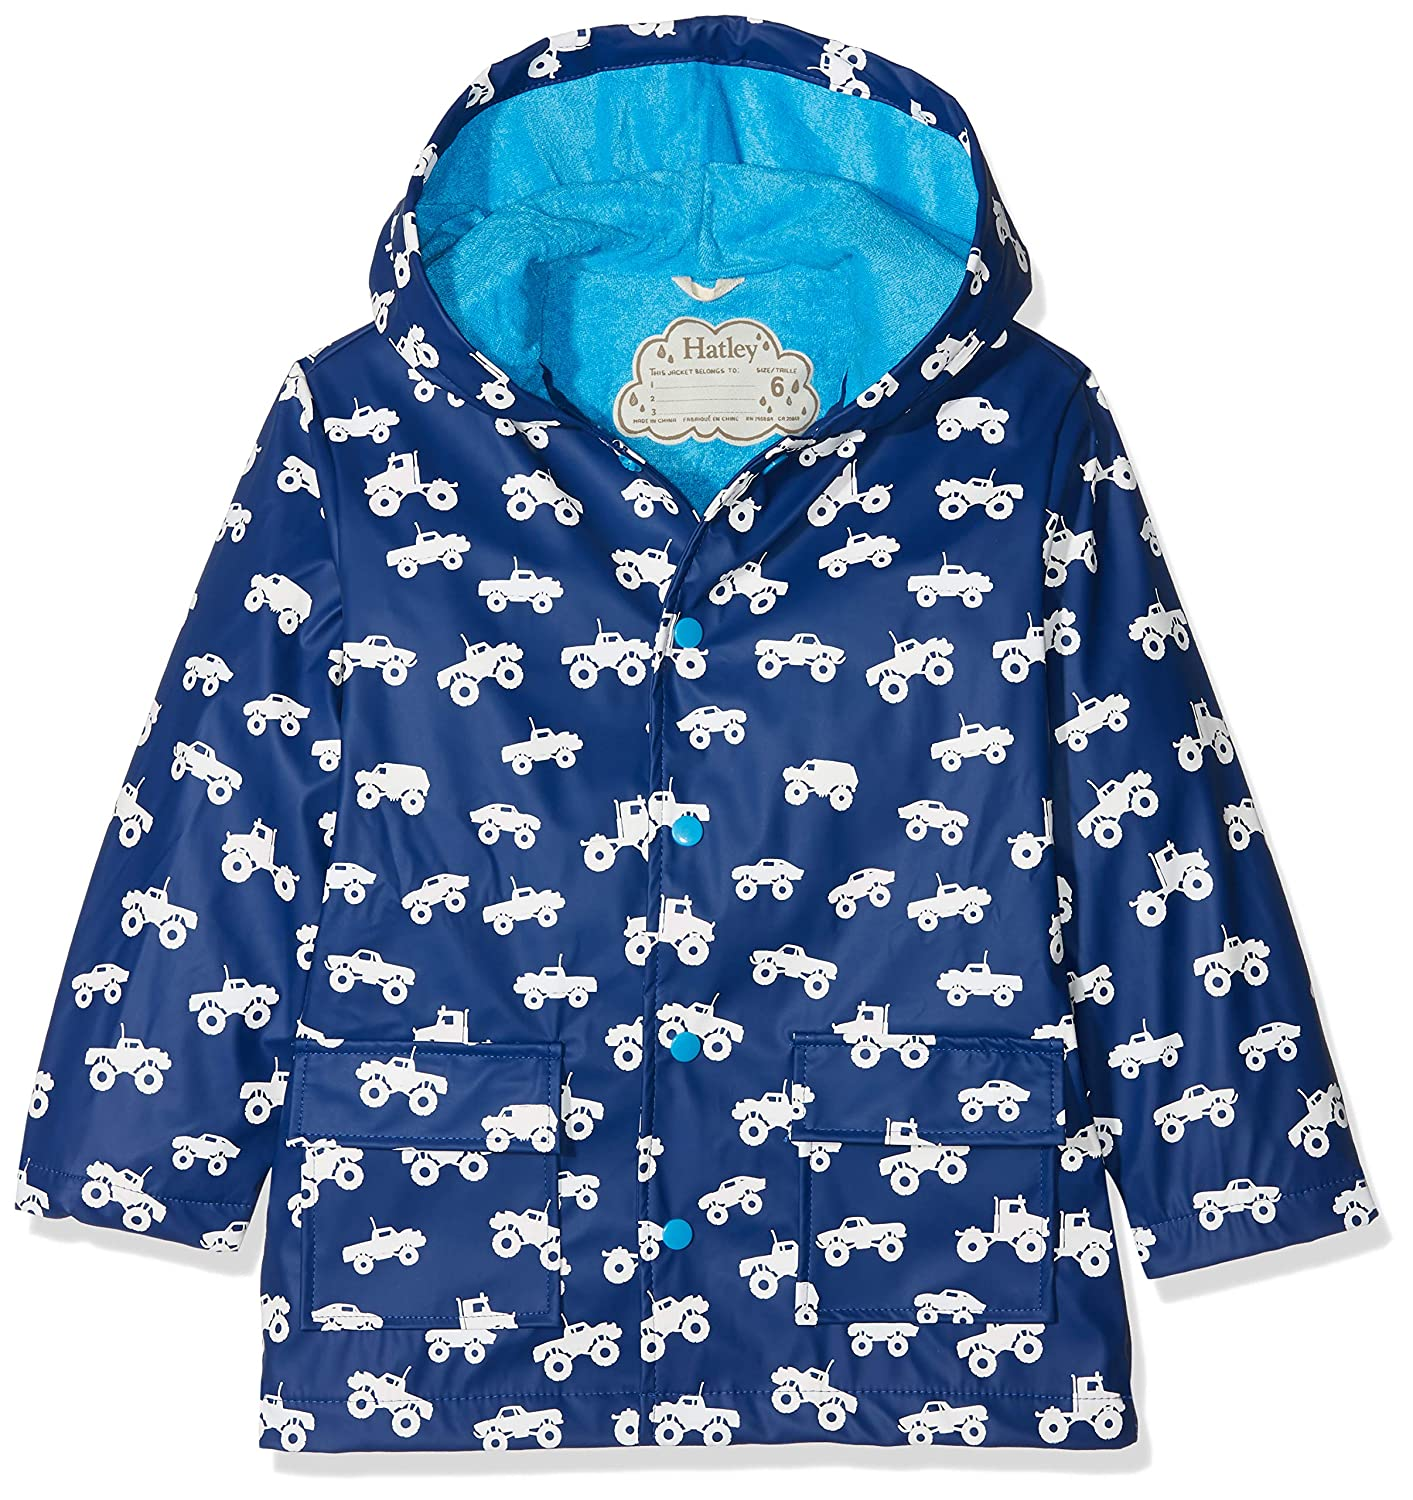 Hatley Boy's Printed Rain Jacket Raincoat